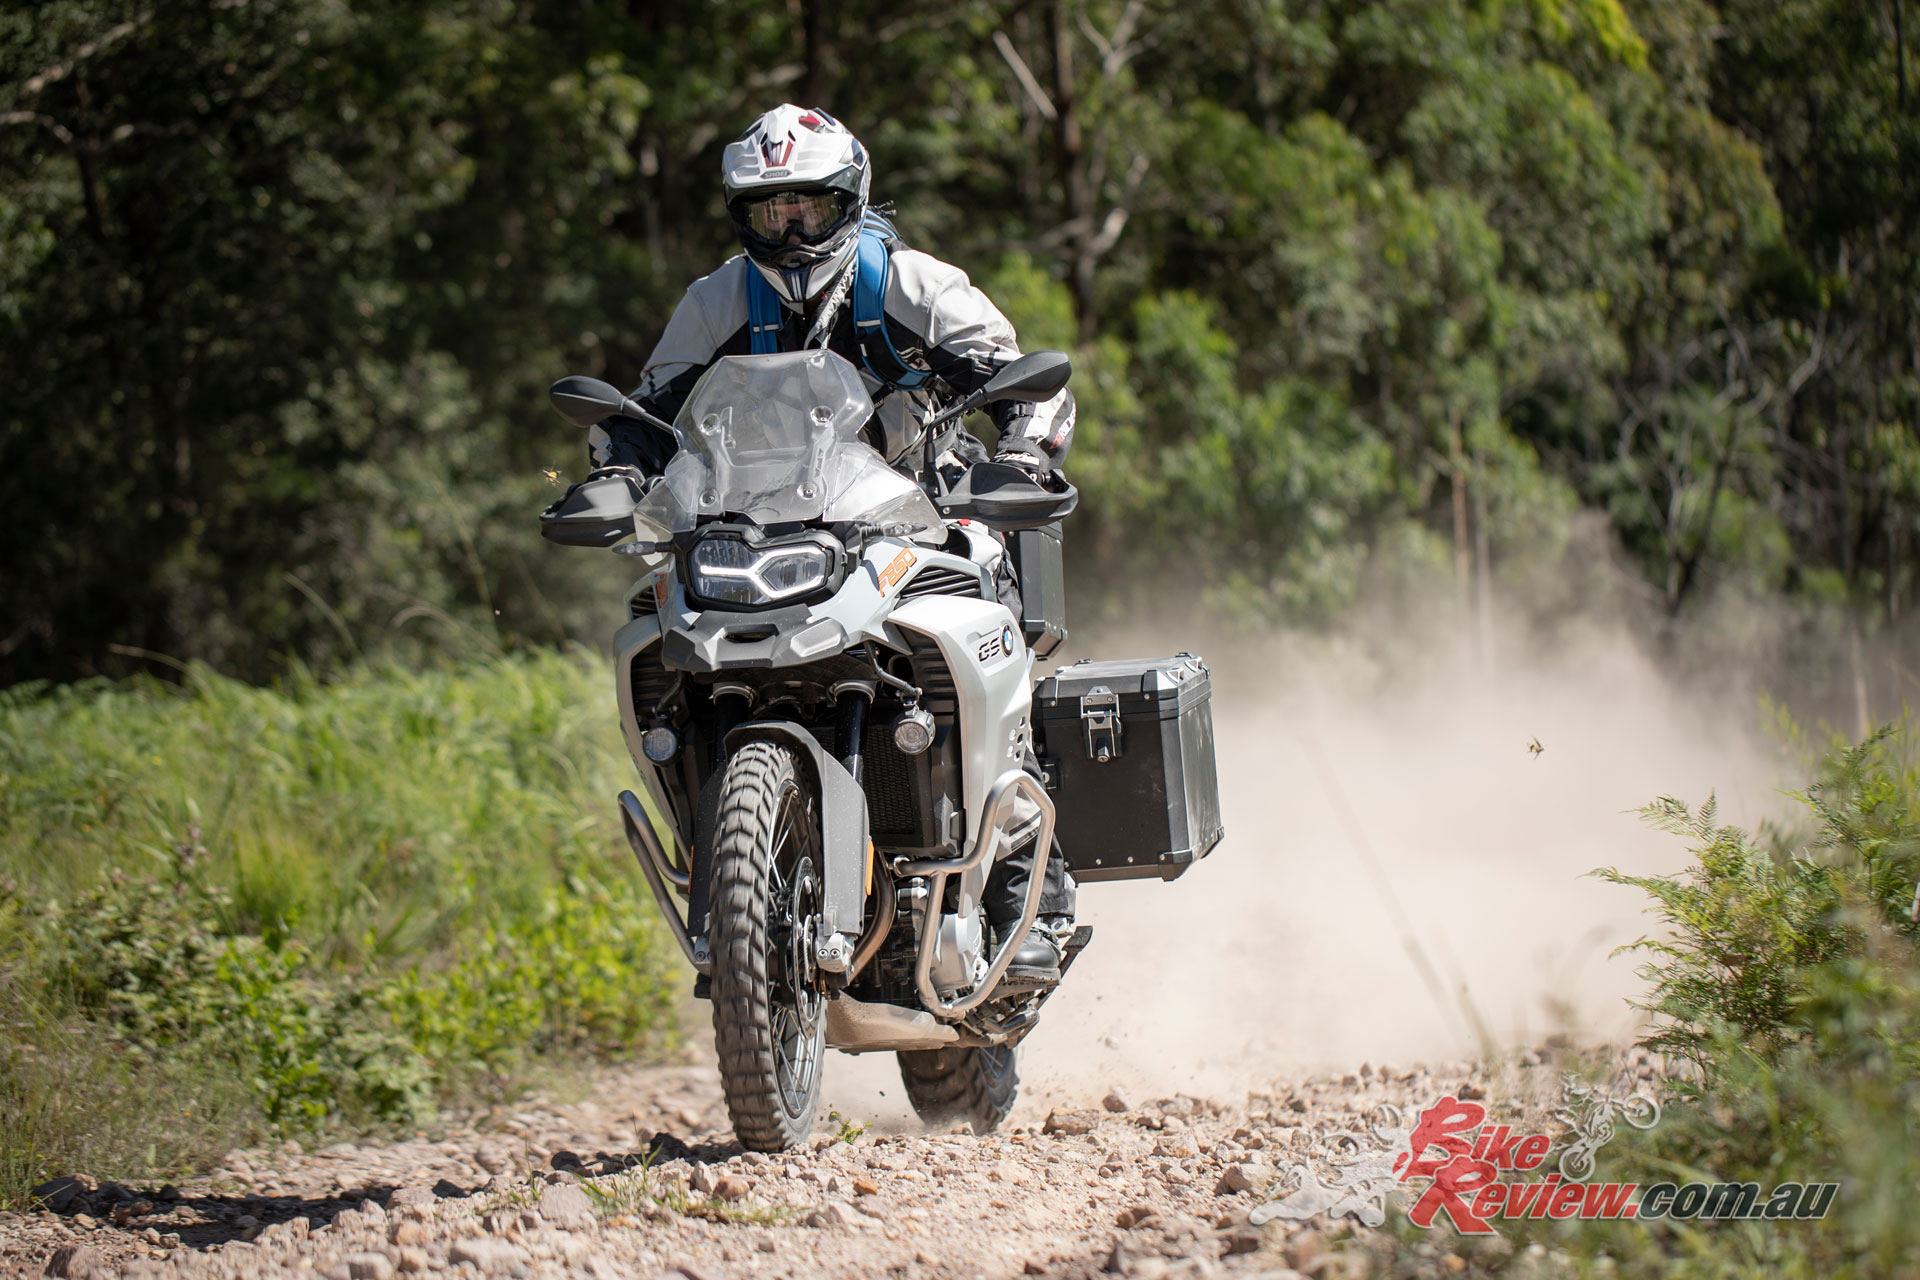 2019-BMW-F-850-GS-Adventure-Bike-Review-DEAN2321